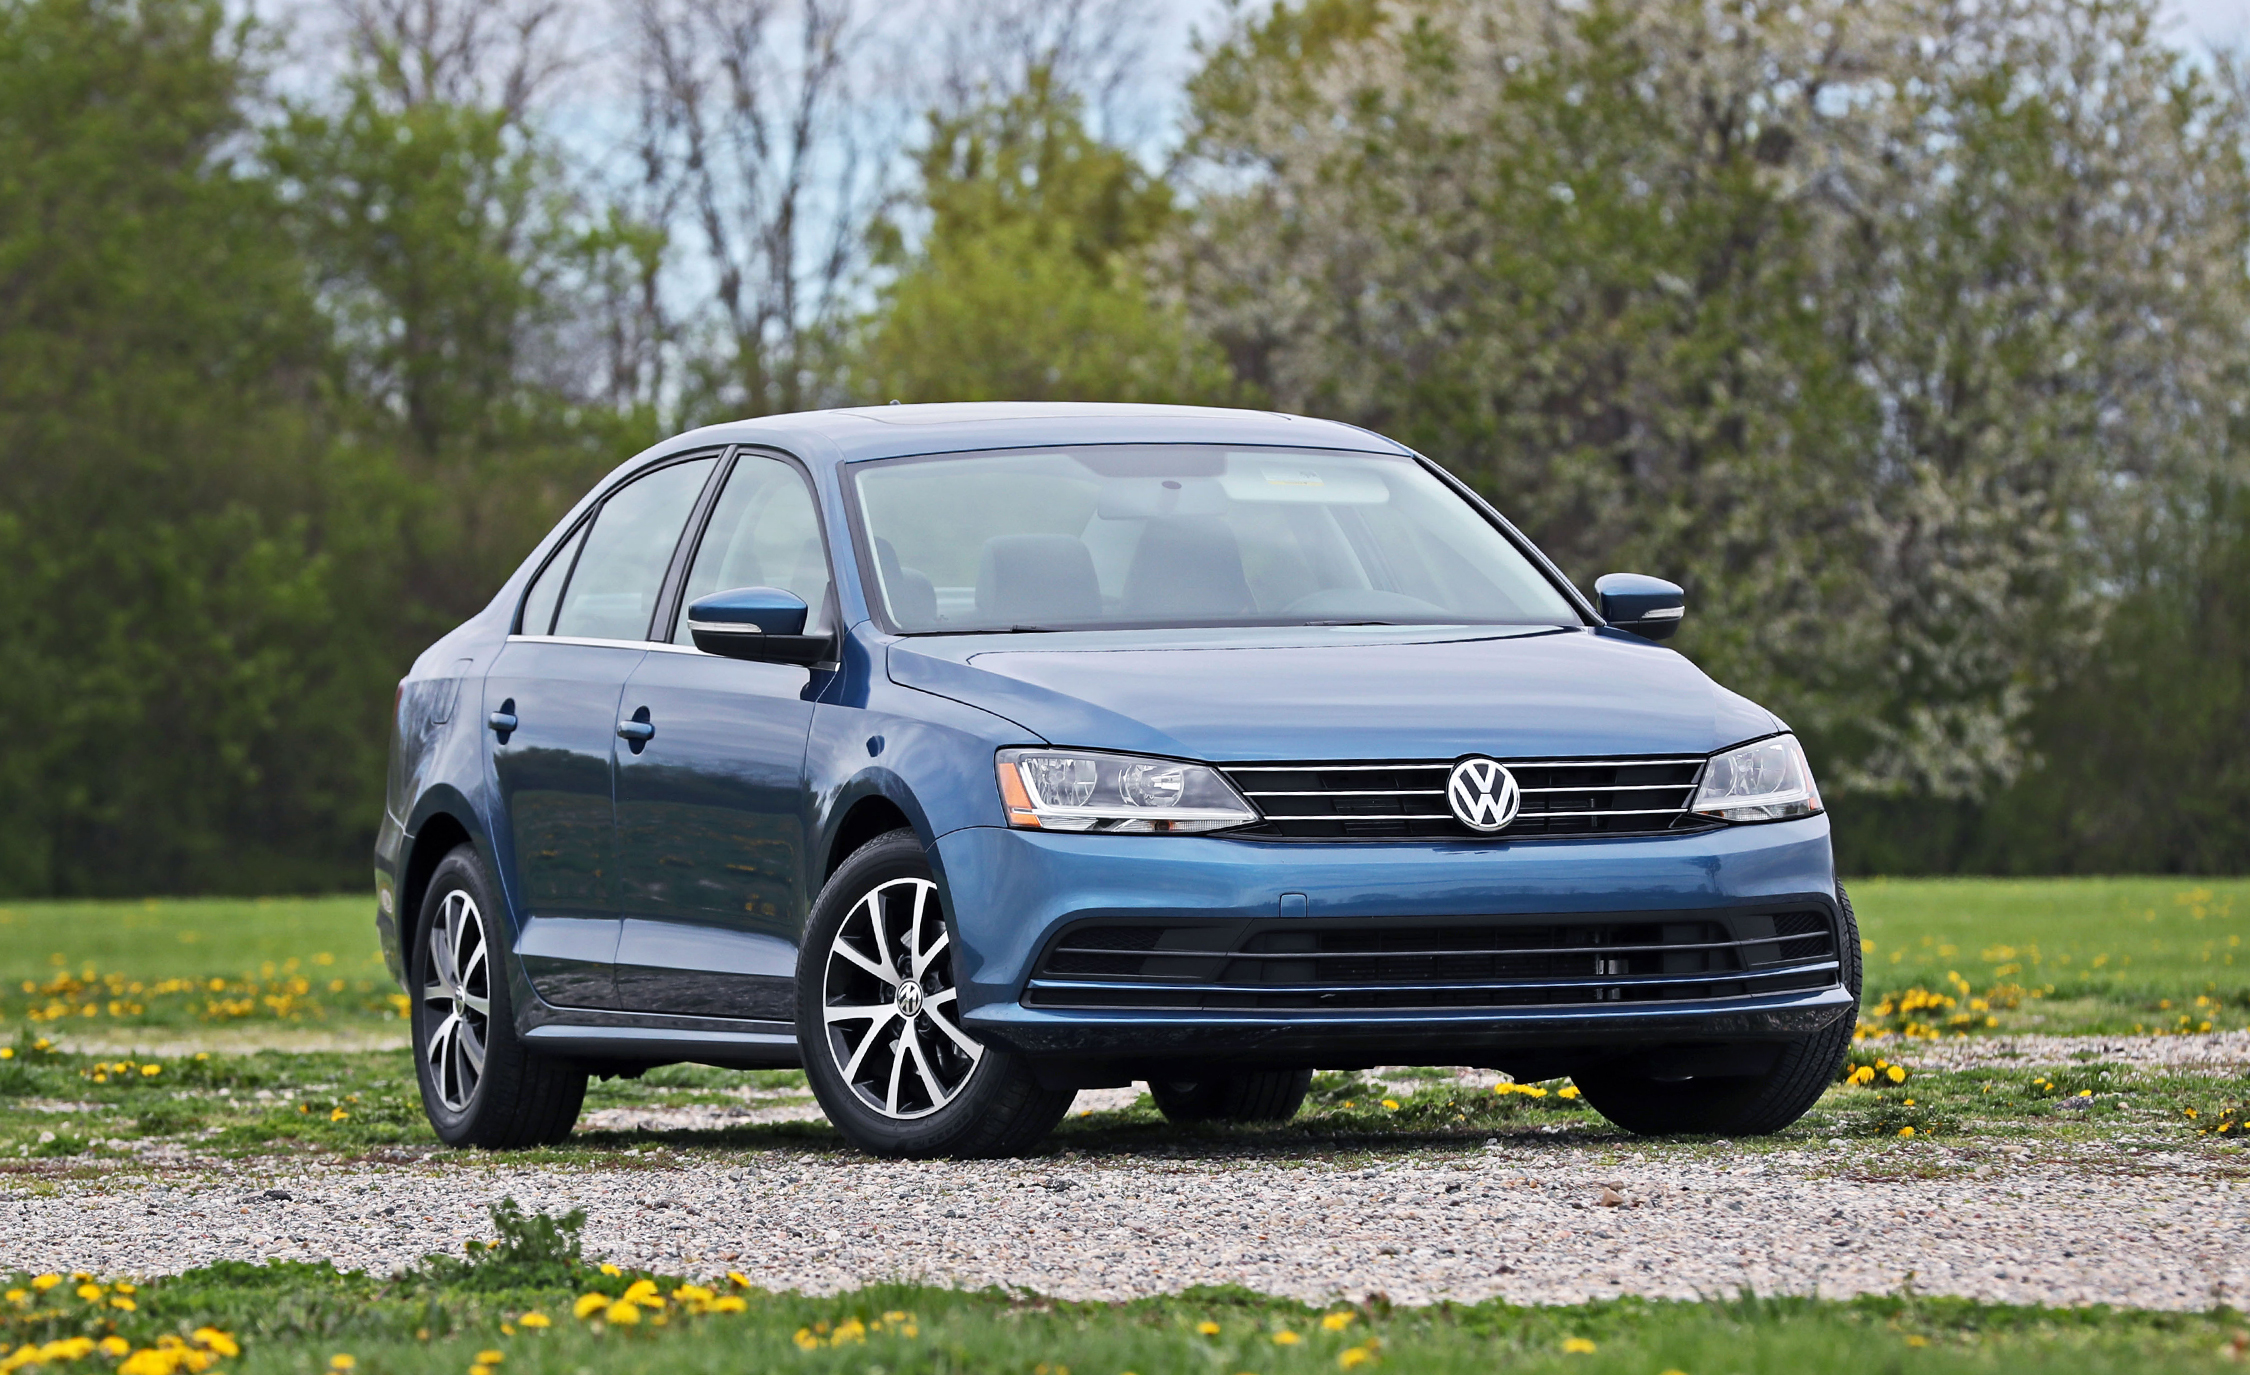 2018-volkswagen-jetta-engine-and-transmission-review-car-and-driver-photo-696520-s-original